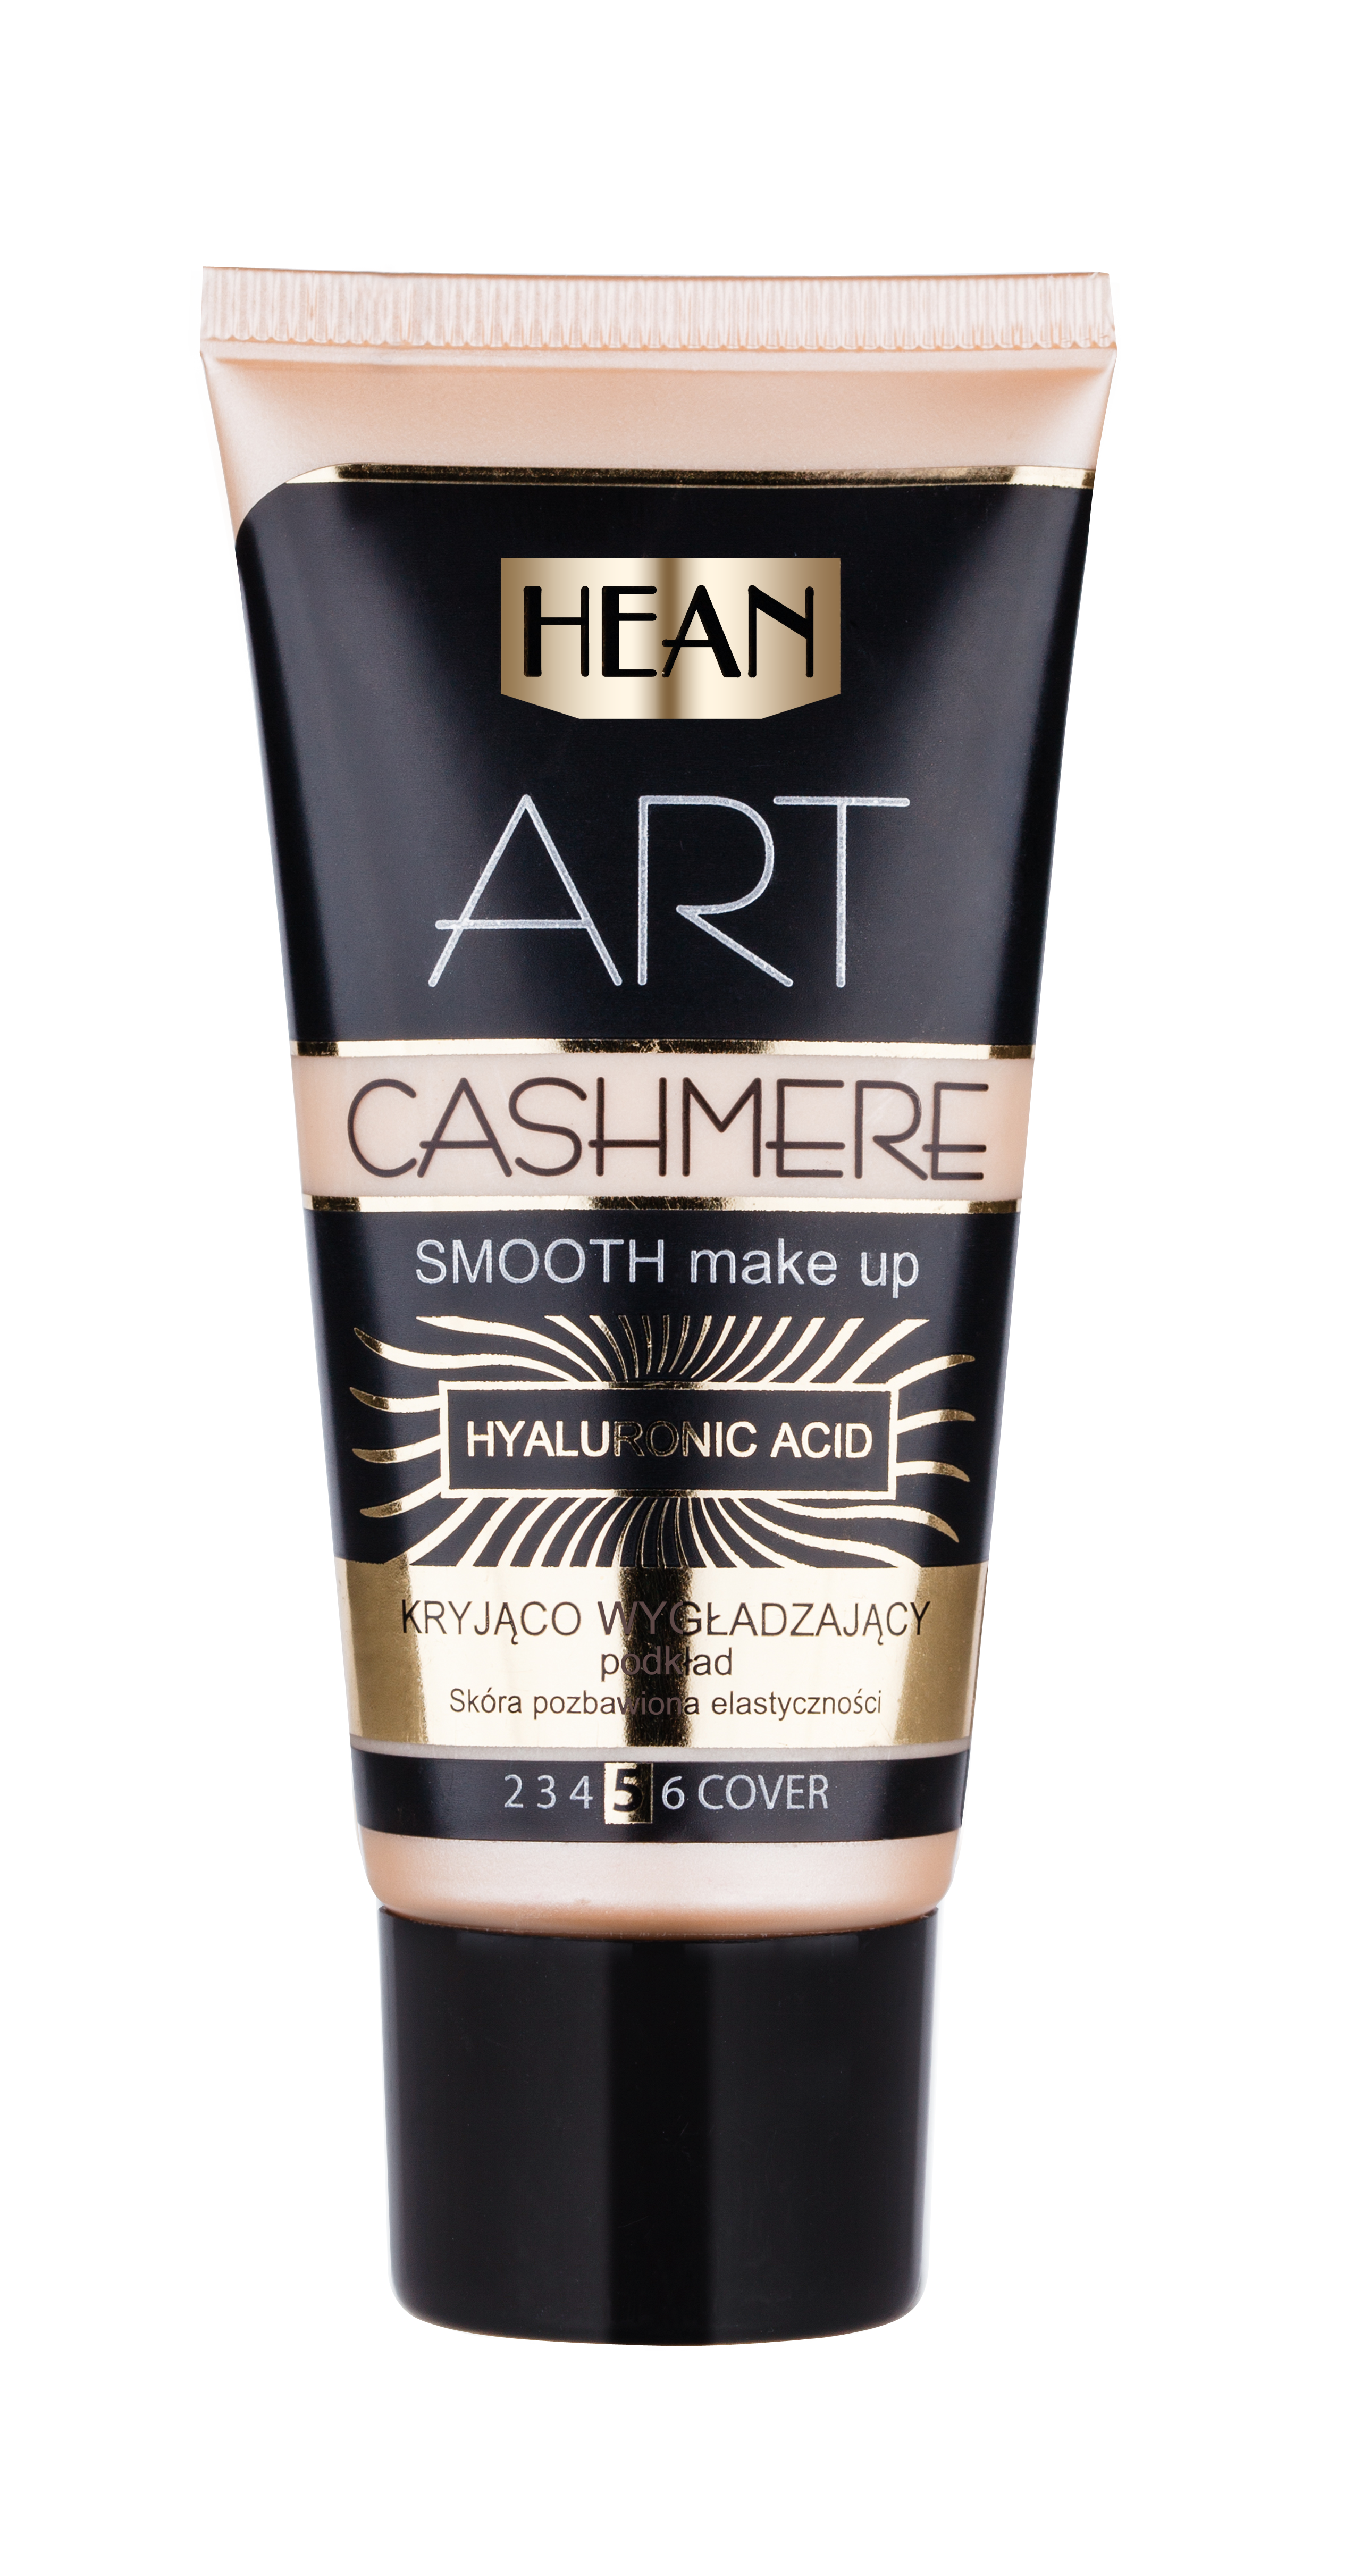 Hean Make-up Cashmere silně krycí 500 Vanilla 30ml